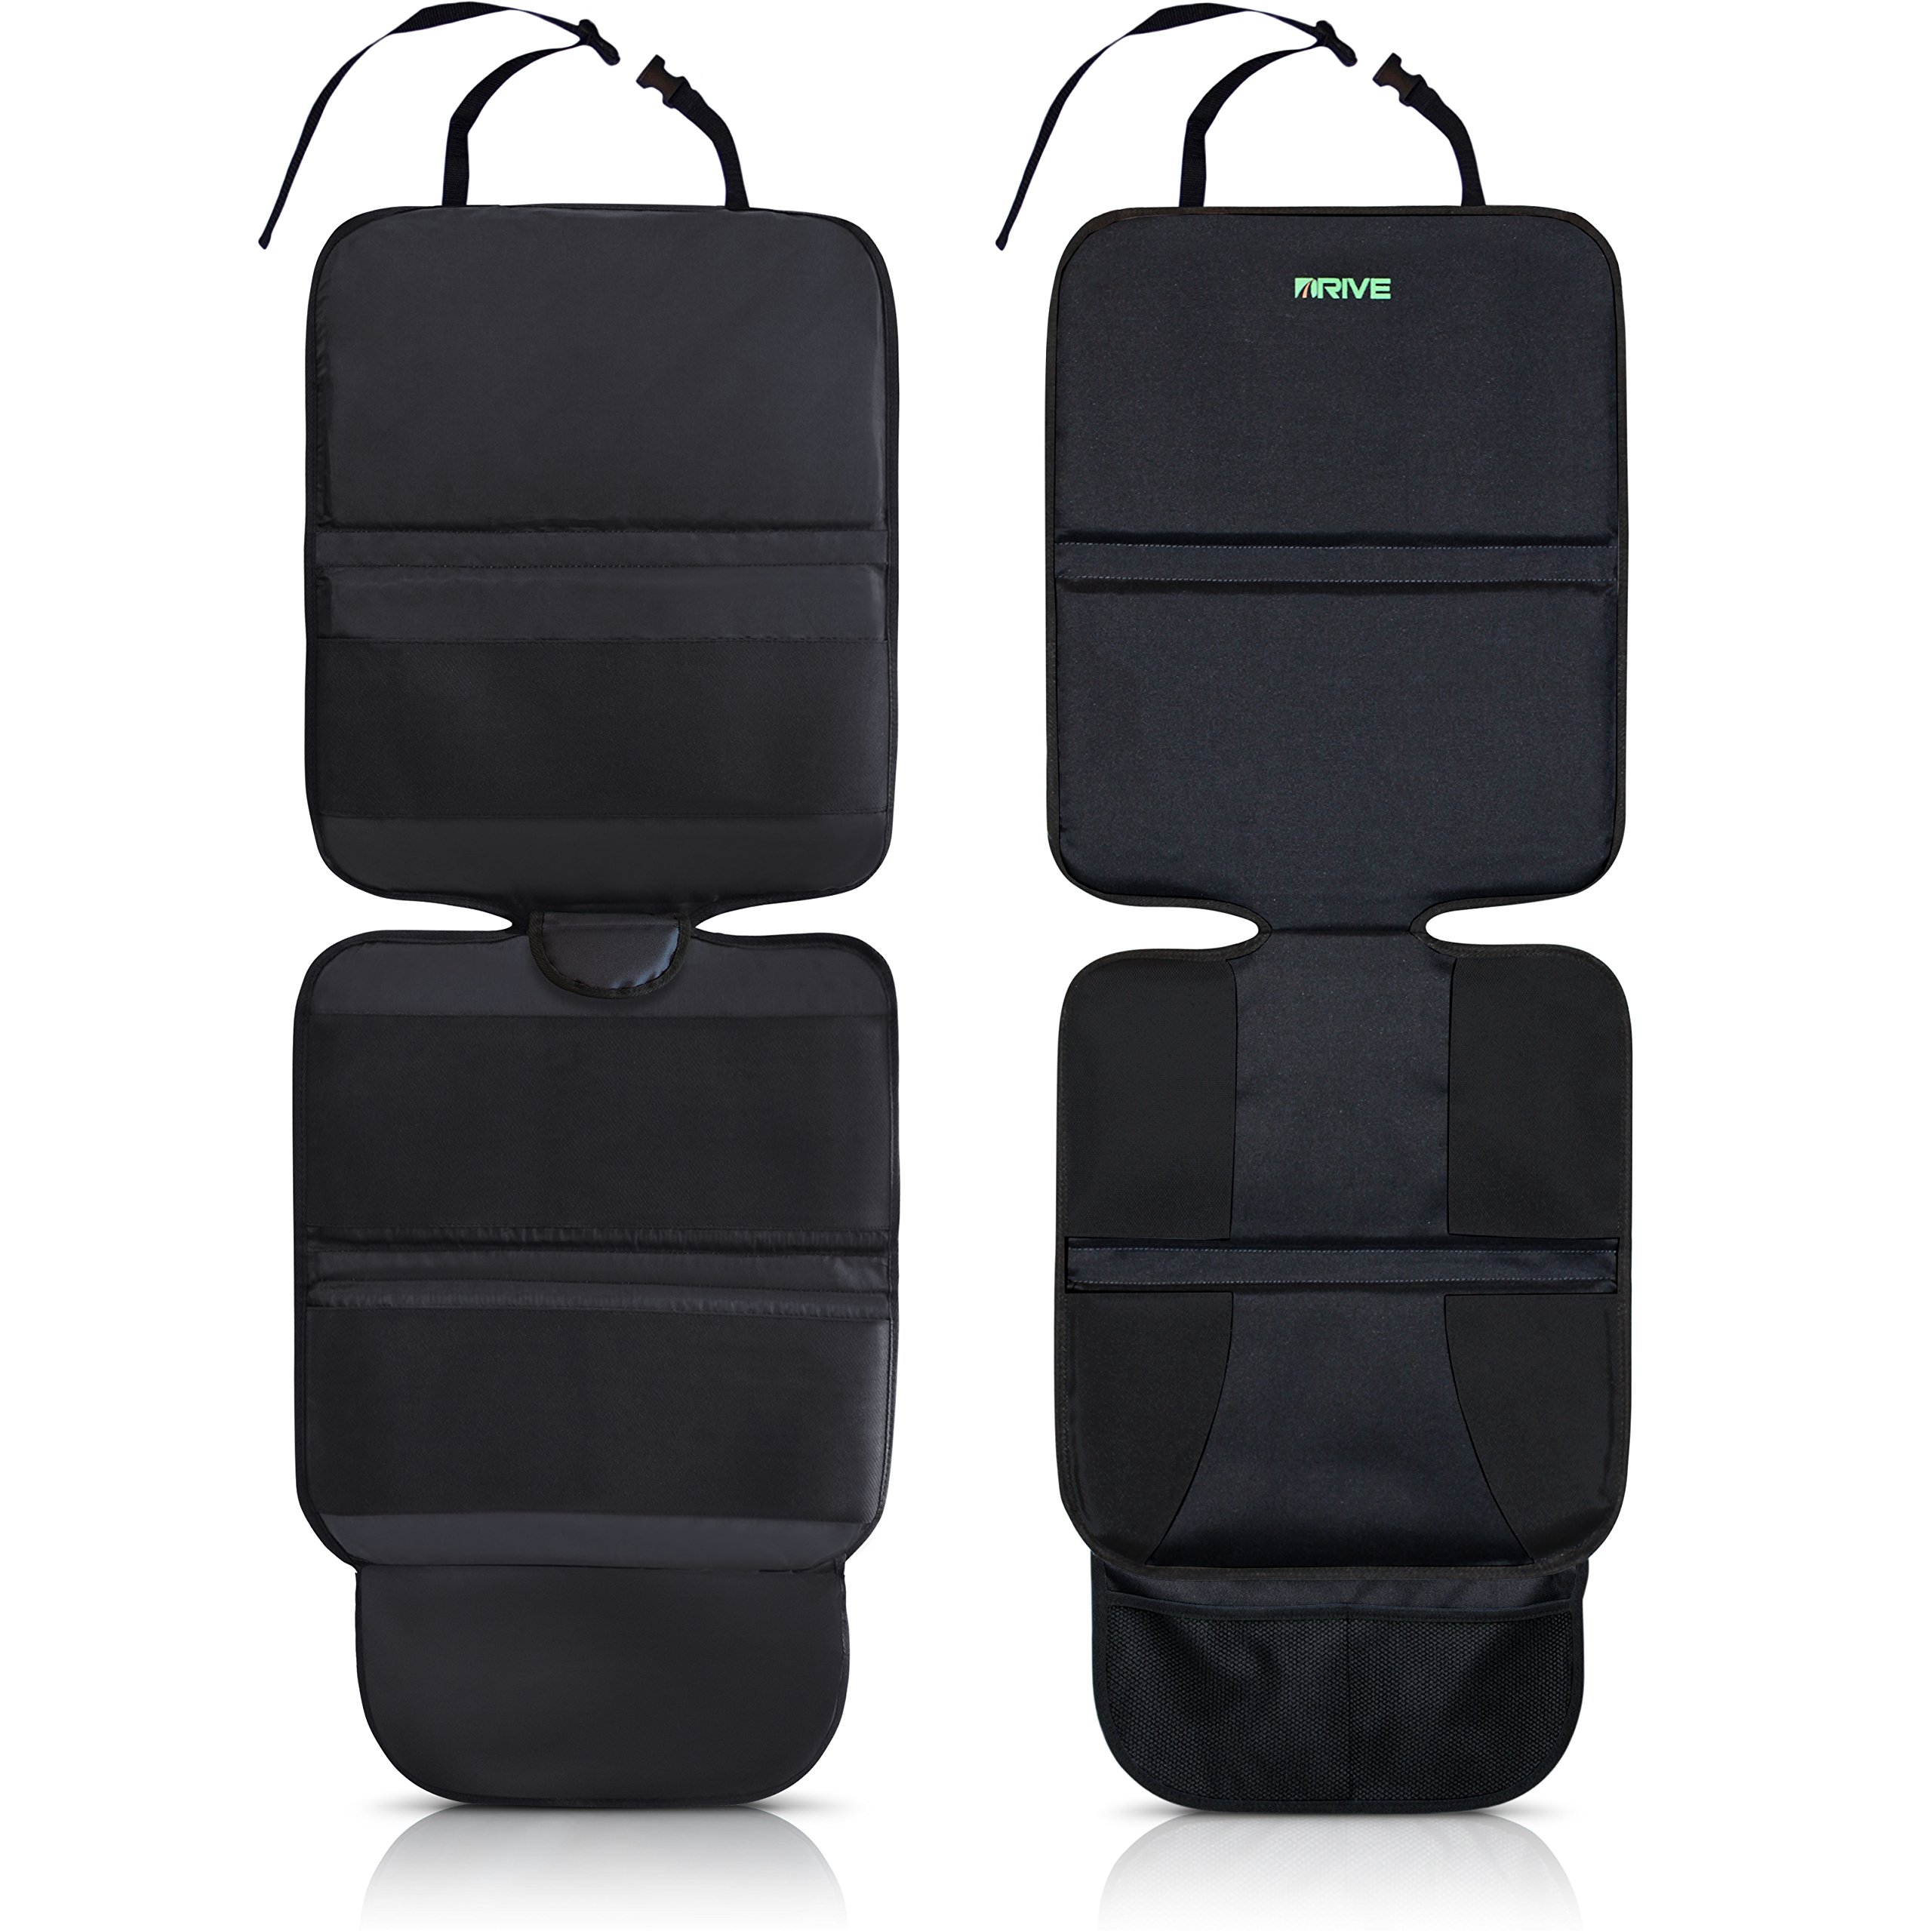 Drive Auto Products Car Seat Protector (2-Pack) by, Black - Ultimate Neoprene Backing is Best Protection for Child & Baby Cars Seats, Dog Mat - Cover Pad Protects Automotive Vehicle Upholstery